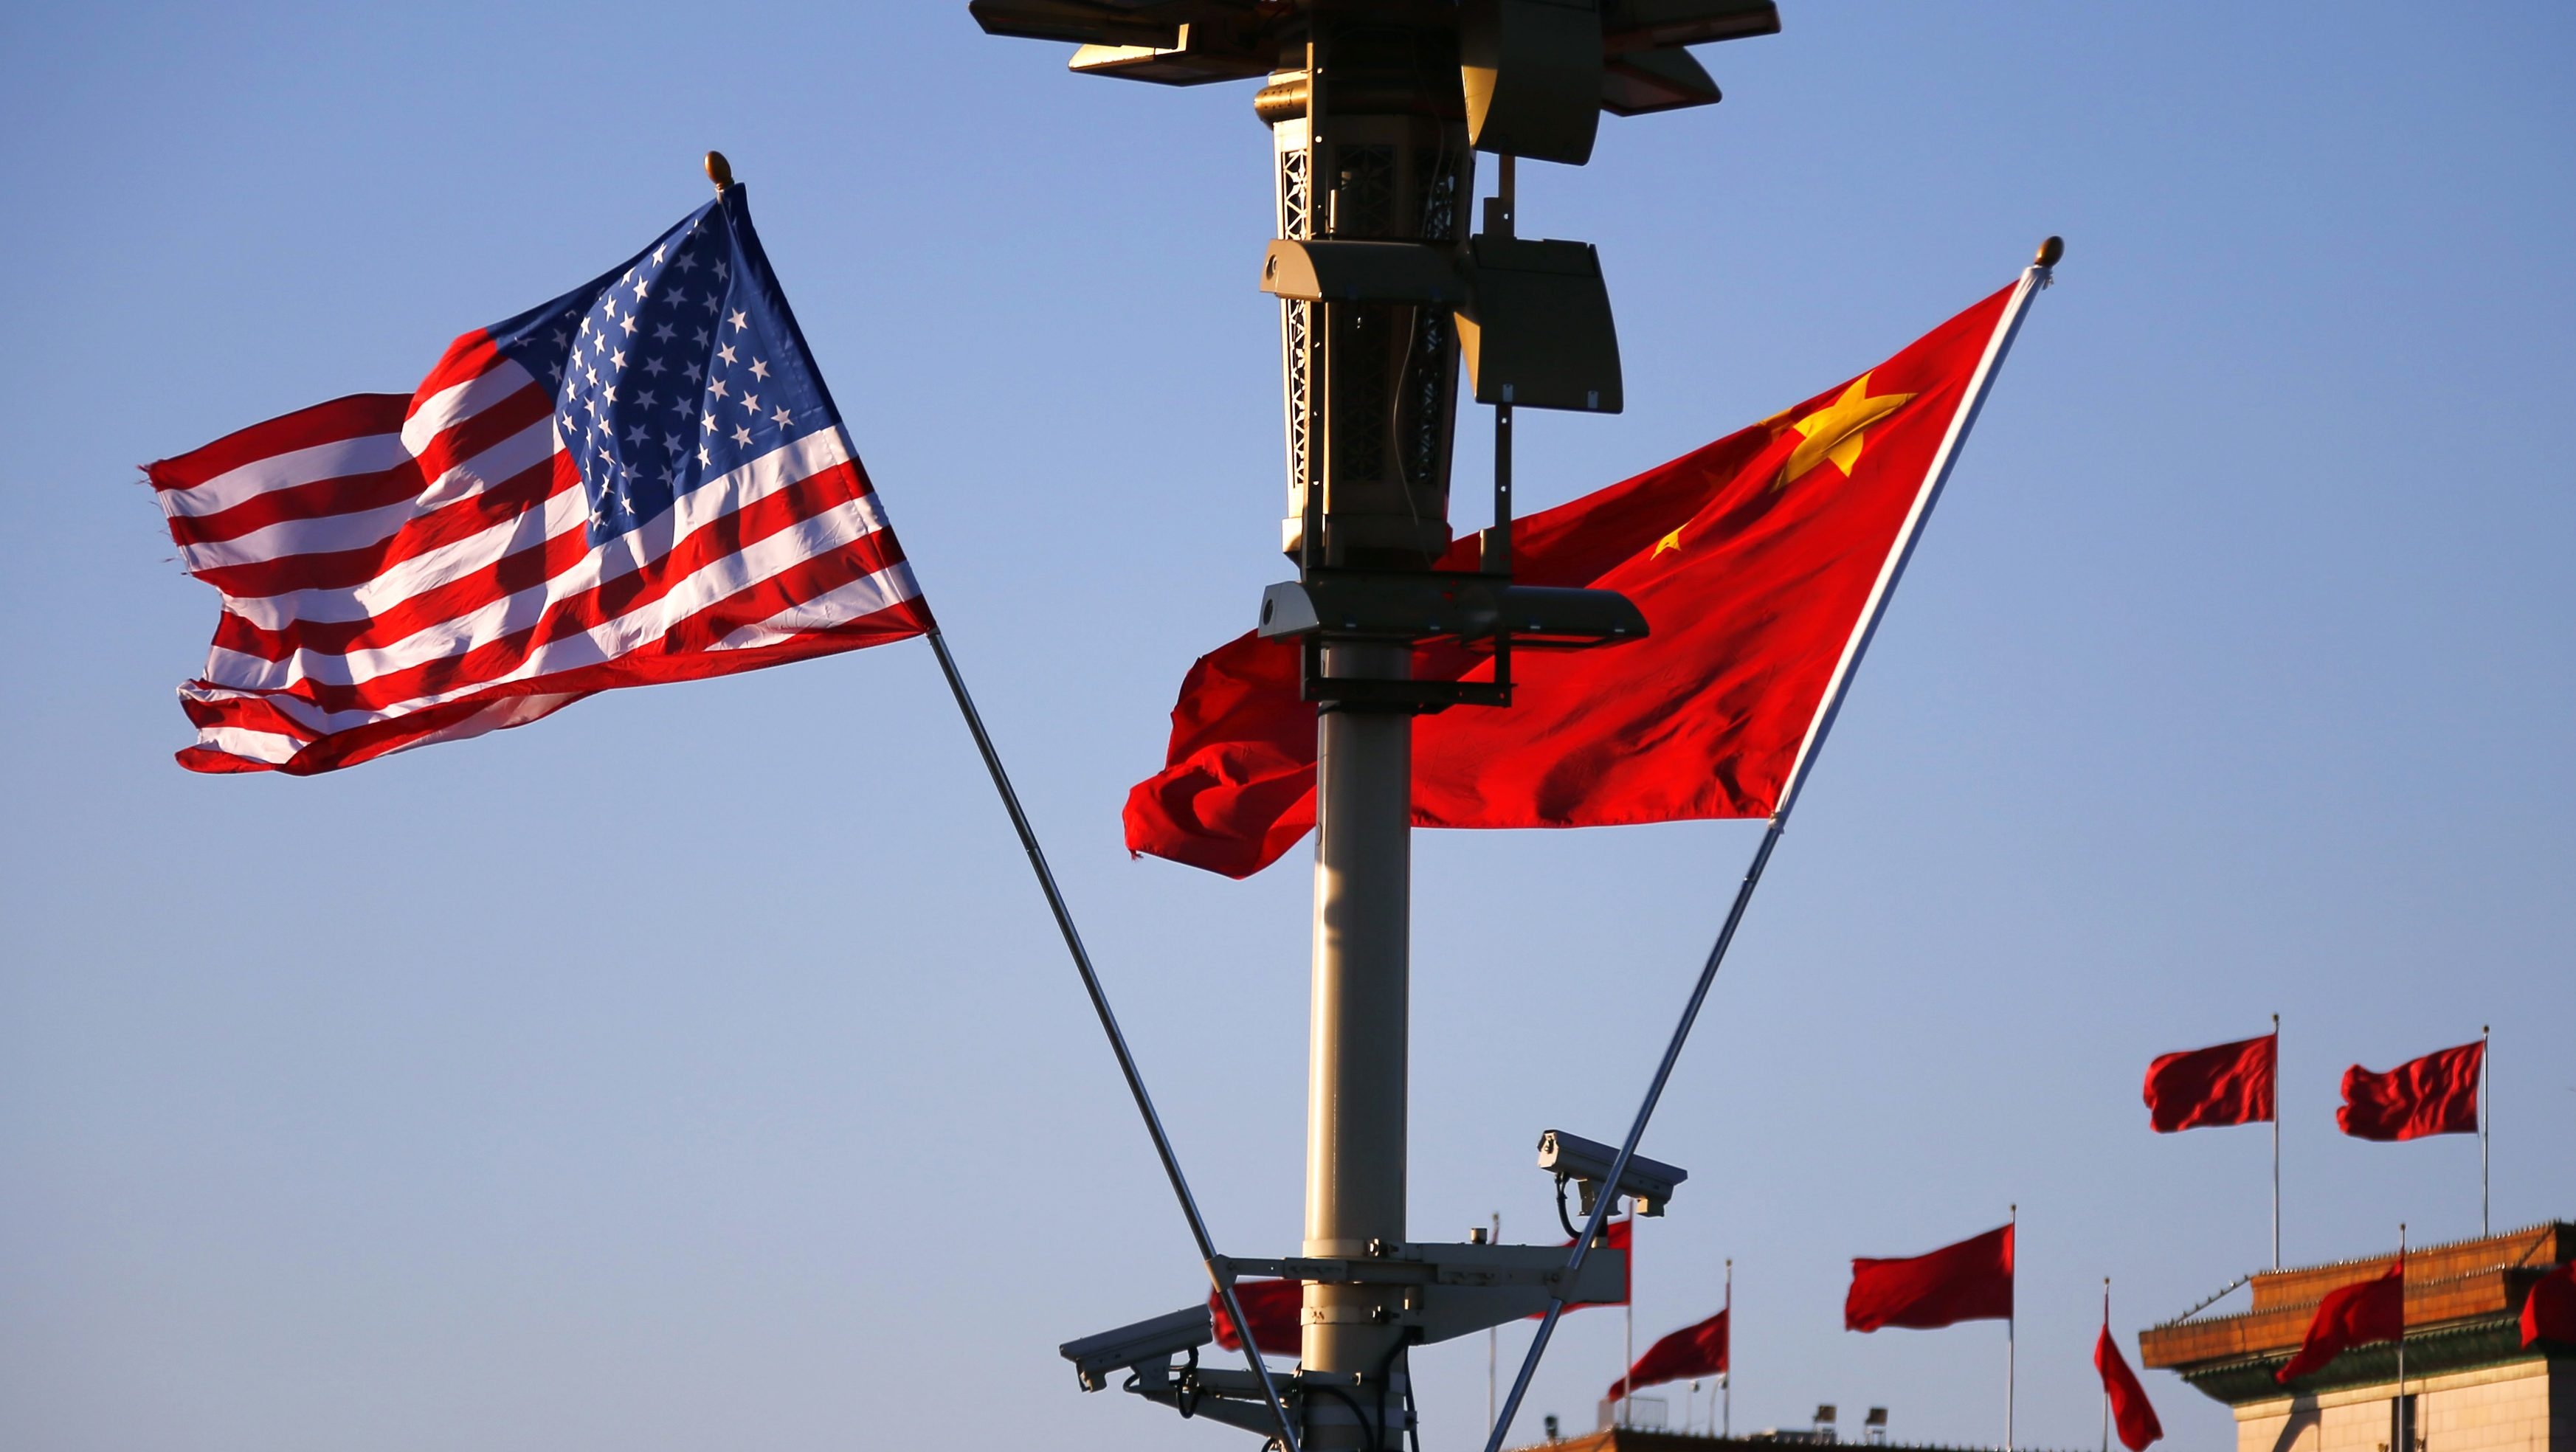 U.S. (L) and Chinese national flags flutter on a light post at the Tiananmen Square ahead of a welcoming ceremony for U.S. President Barack Obama, in Beijing, November 12, 2014. REUTERS/Petar Kujundzic (CHINA - Tags: POLITICS) - RTR4DSIF